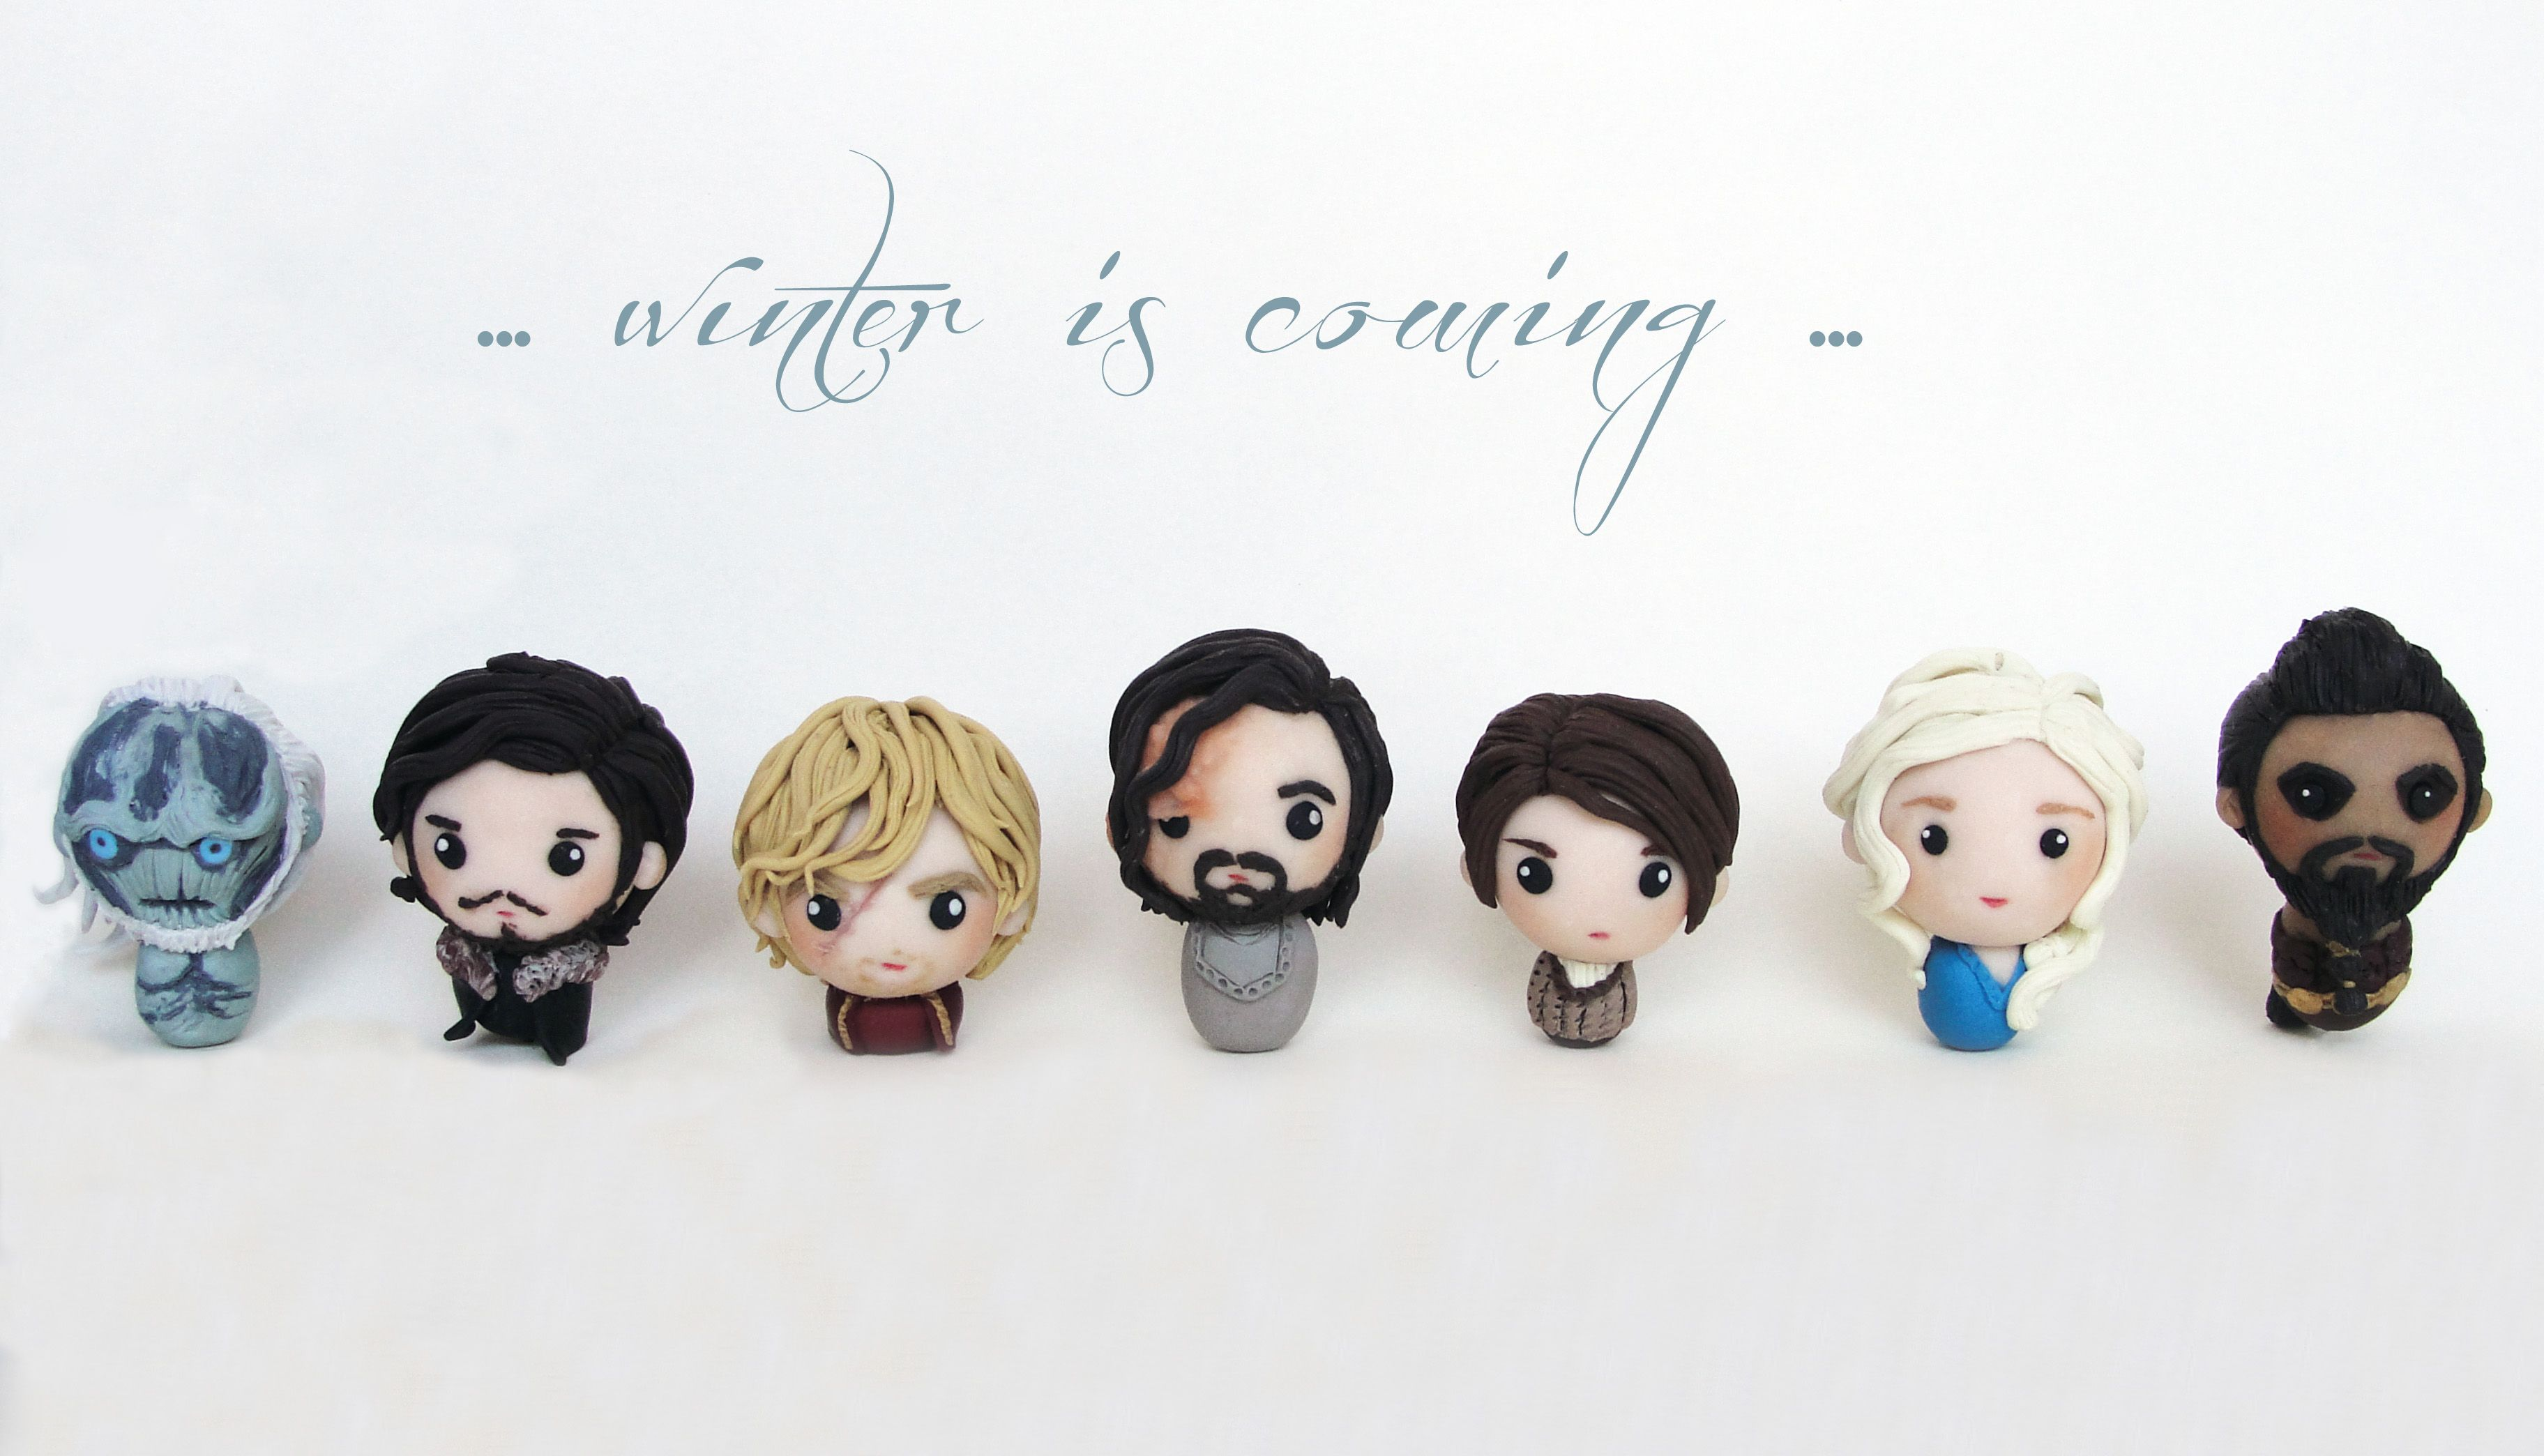 Game Of Thrones Characters Polymer Clay Polymer Clay Miniatures Polymer Clay Charms Polymer Clay